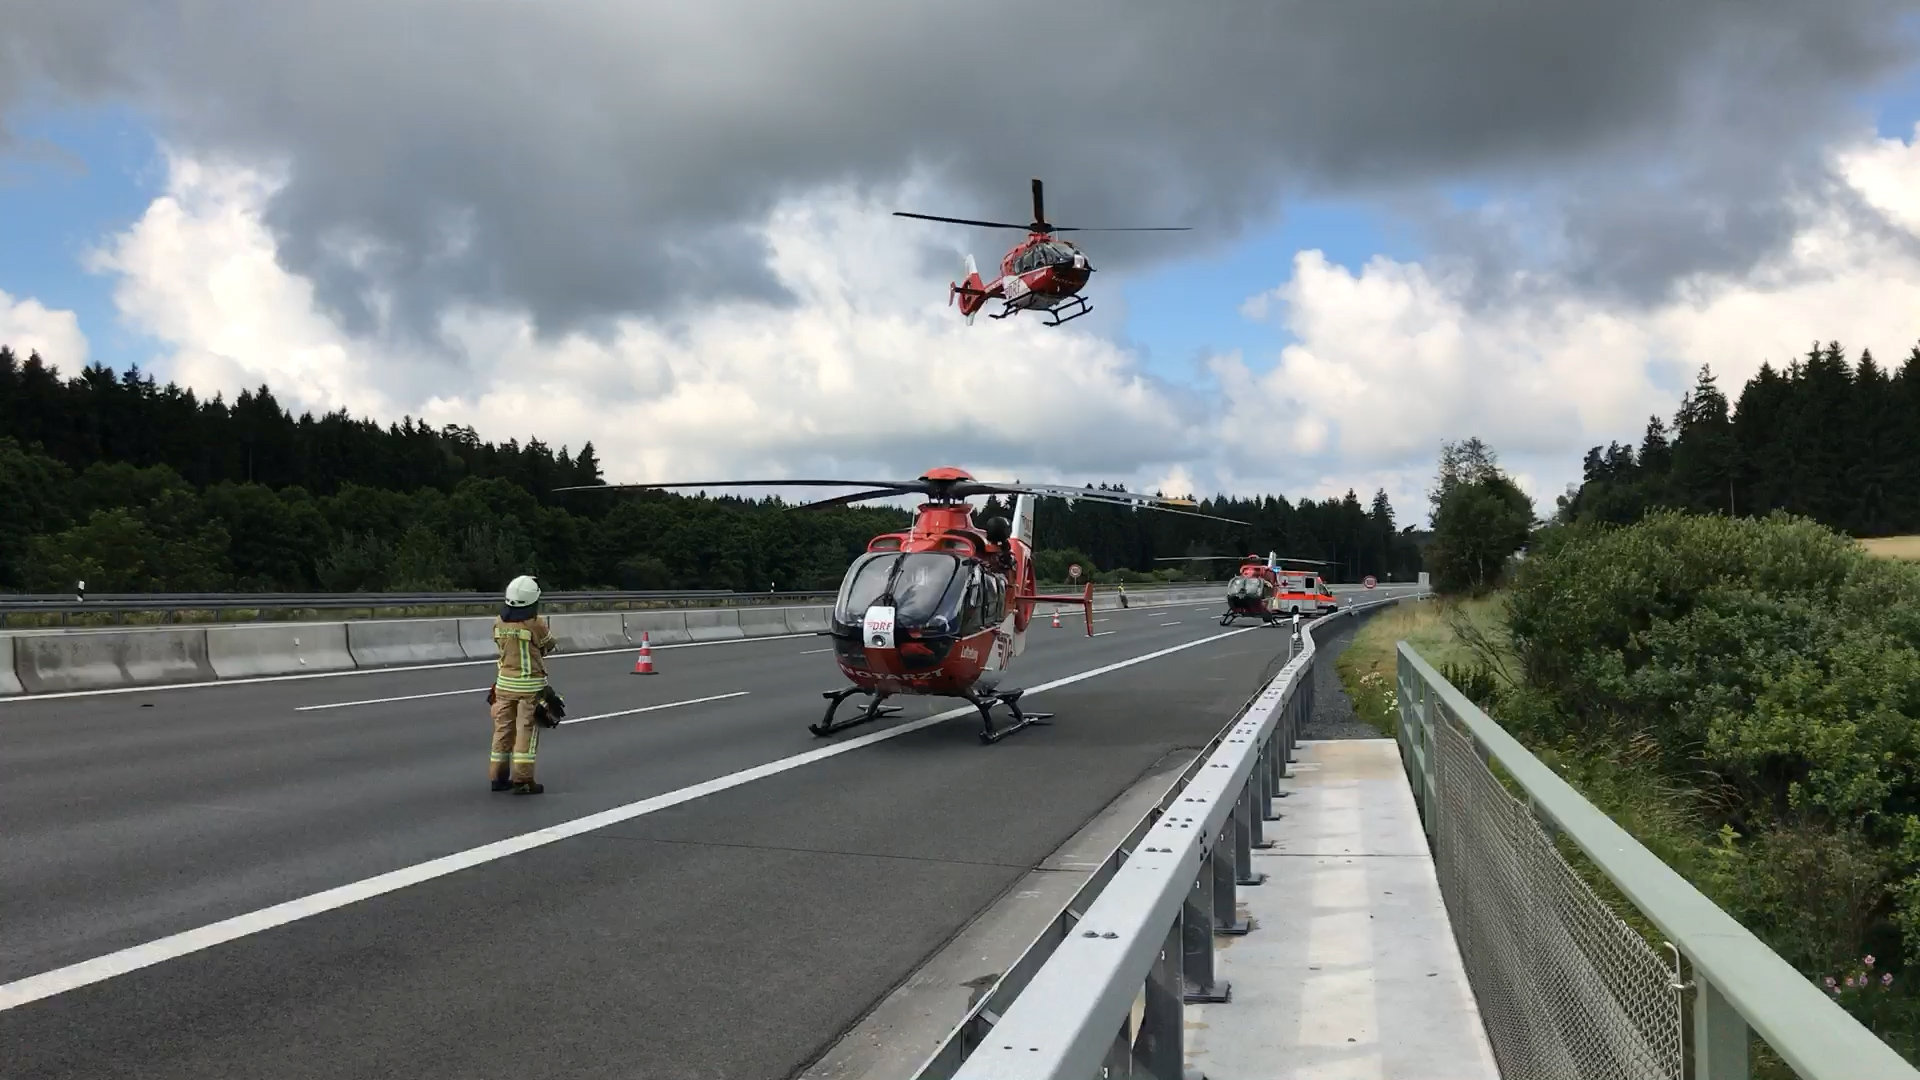 Helicopters at the site where a coach burst into flames after colliding with a lorry on a motorway near Muenchberg, Germany on July 3, 2017. (REUTERS/News 5.)